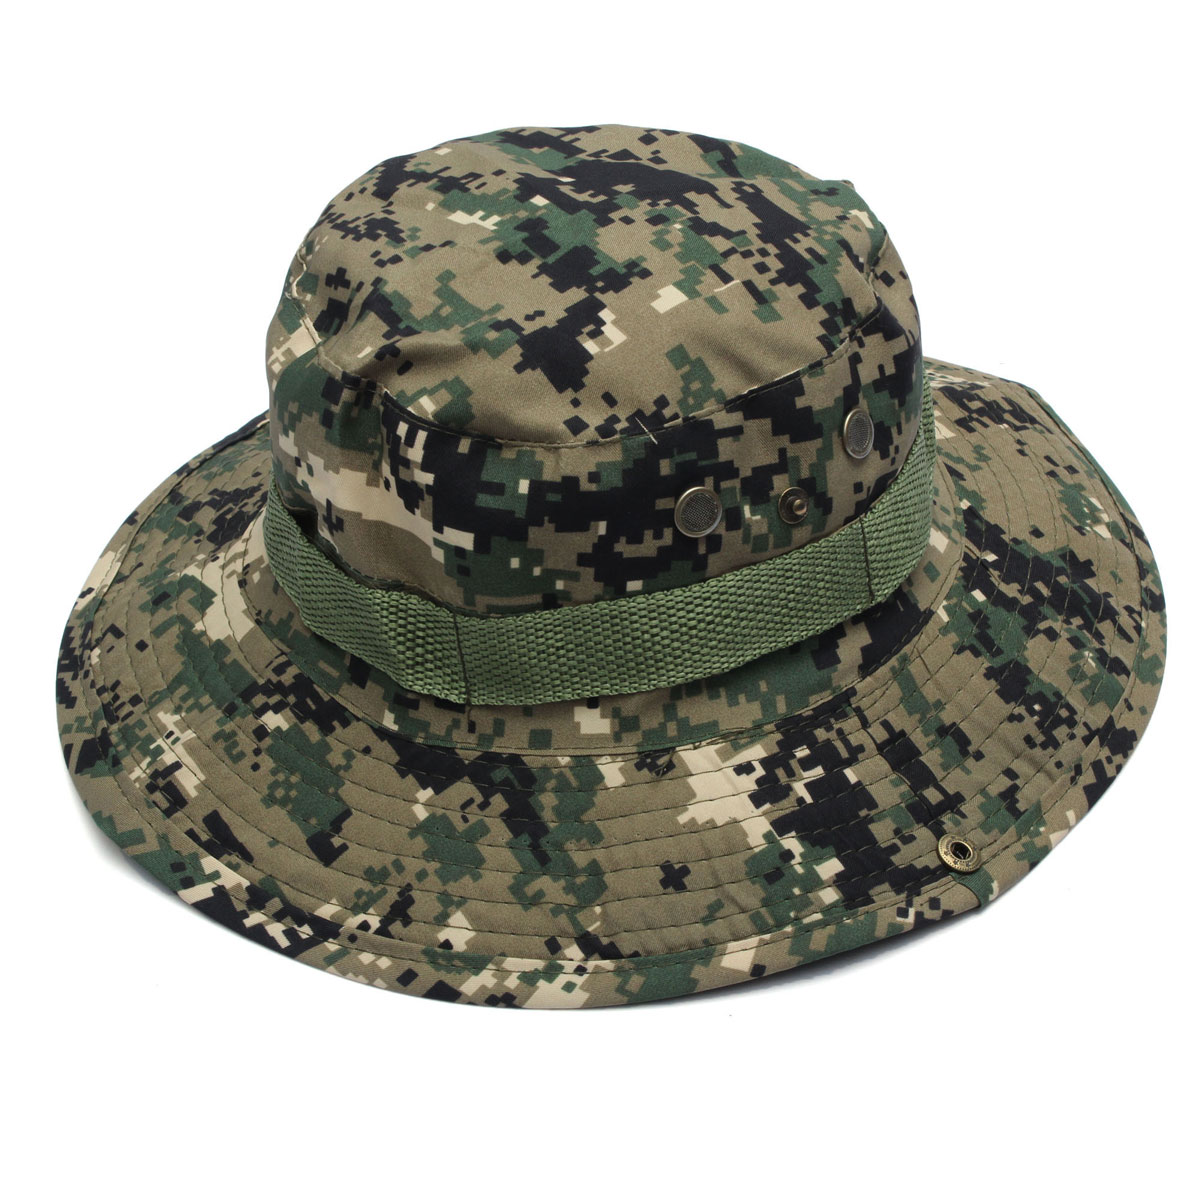 Bucket Hat Boonie Hunting Fishing Outdoor Cap Wide Brim ...